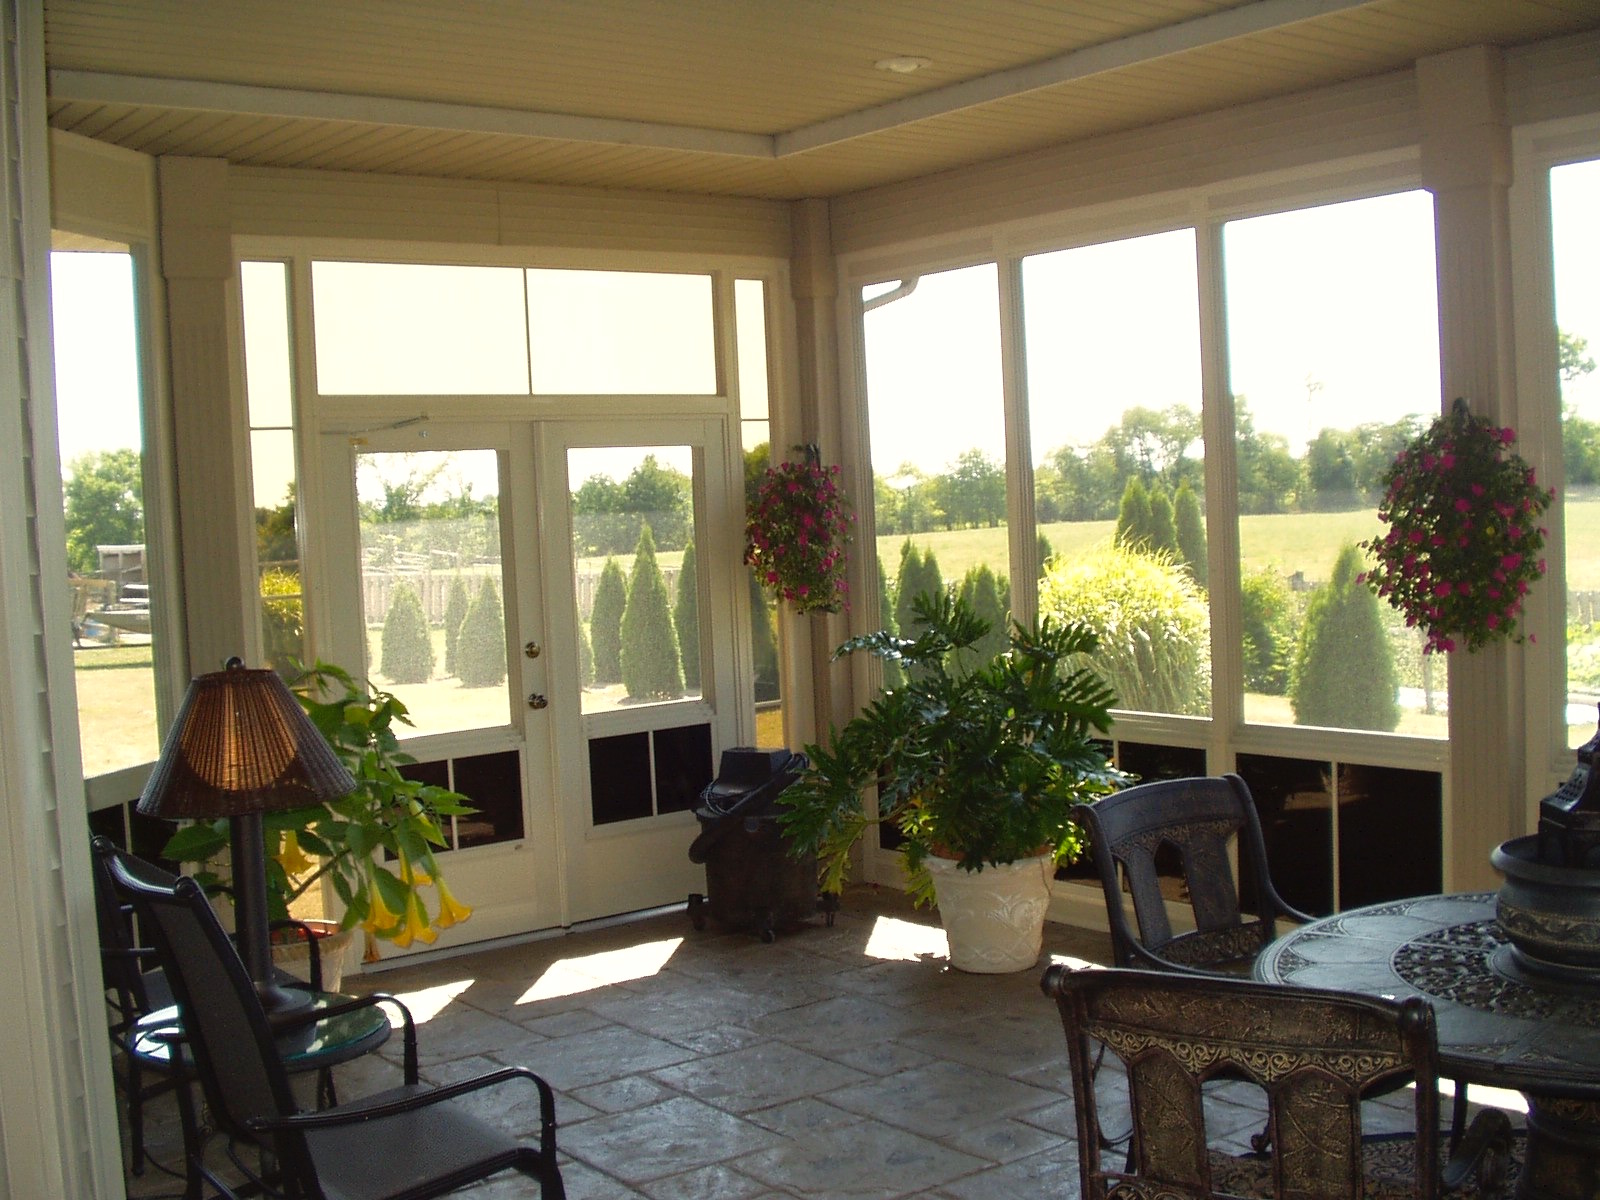 Sunrooms porch conversions free estimate porch for Porch sunroom